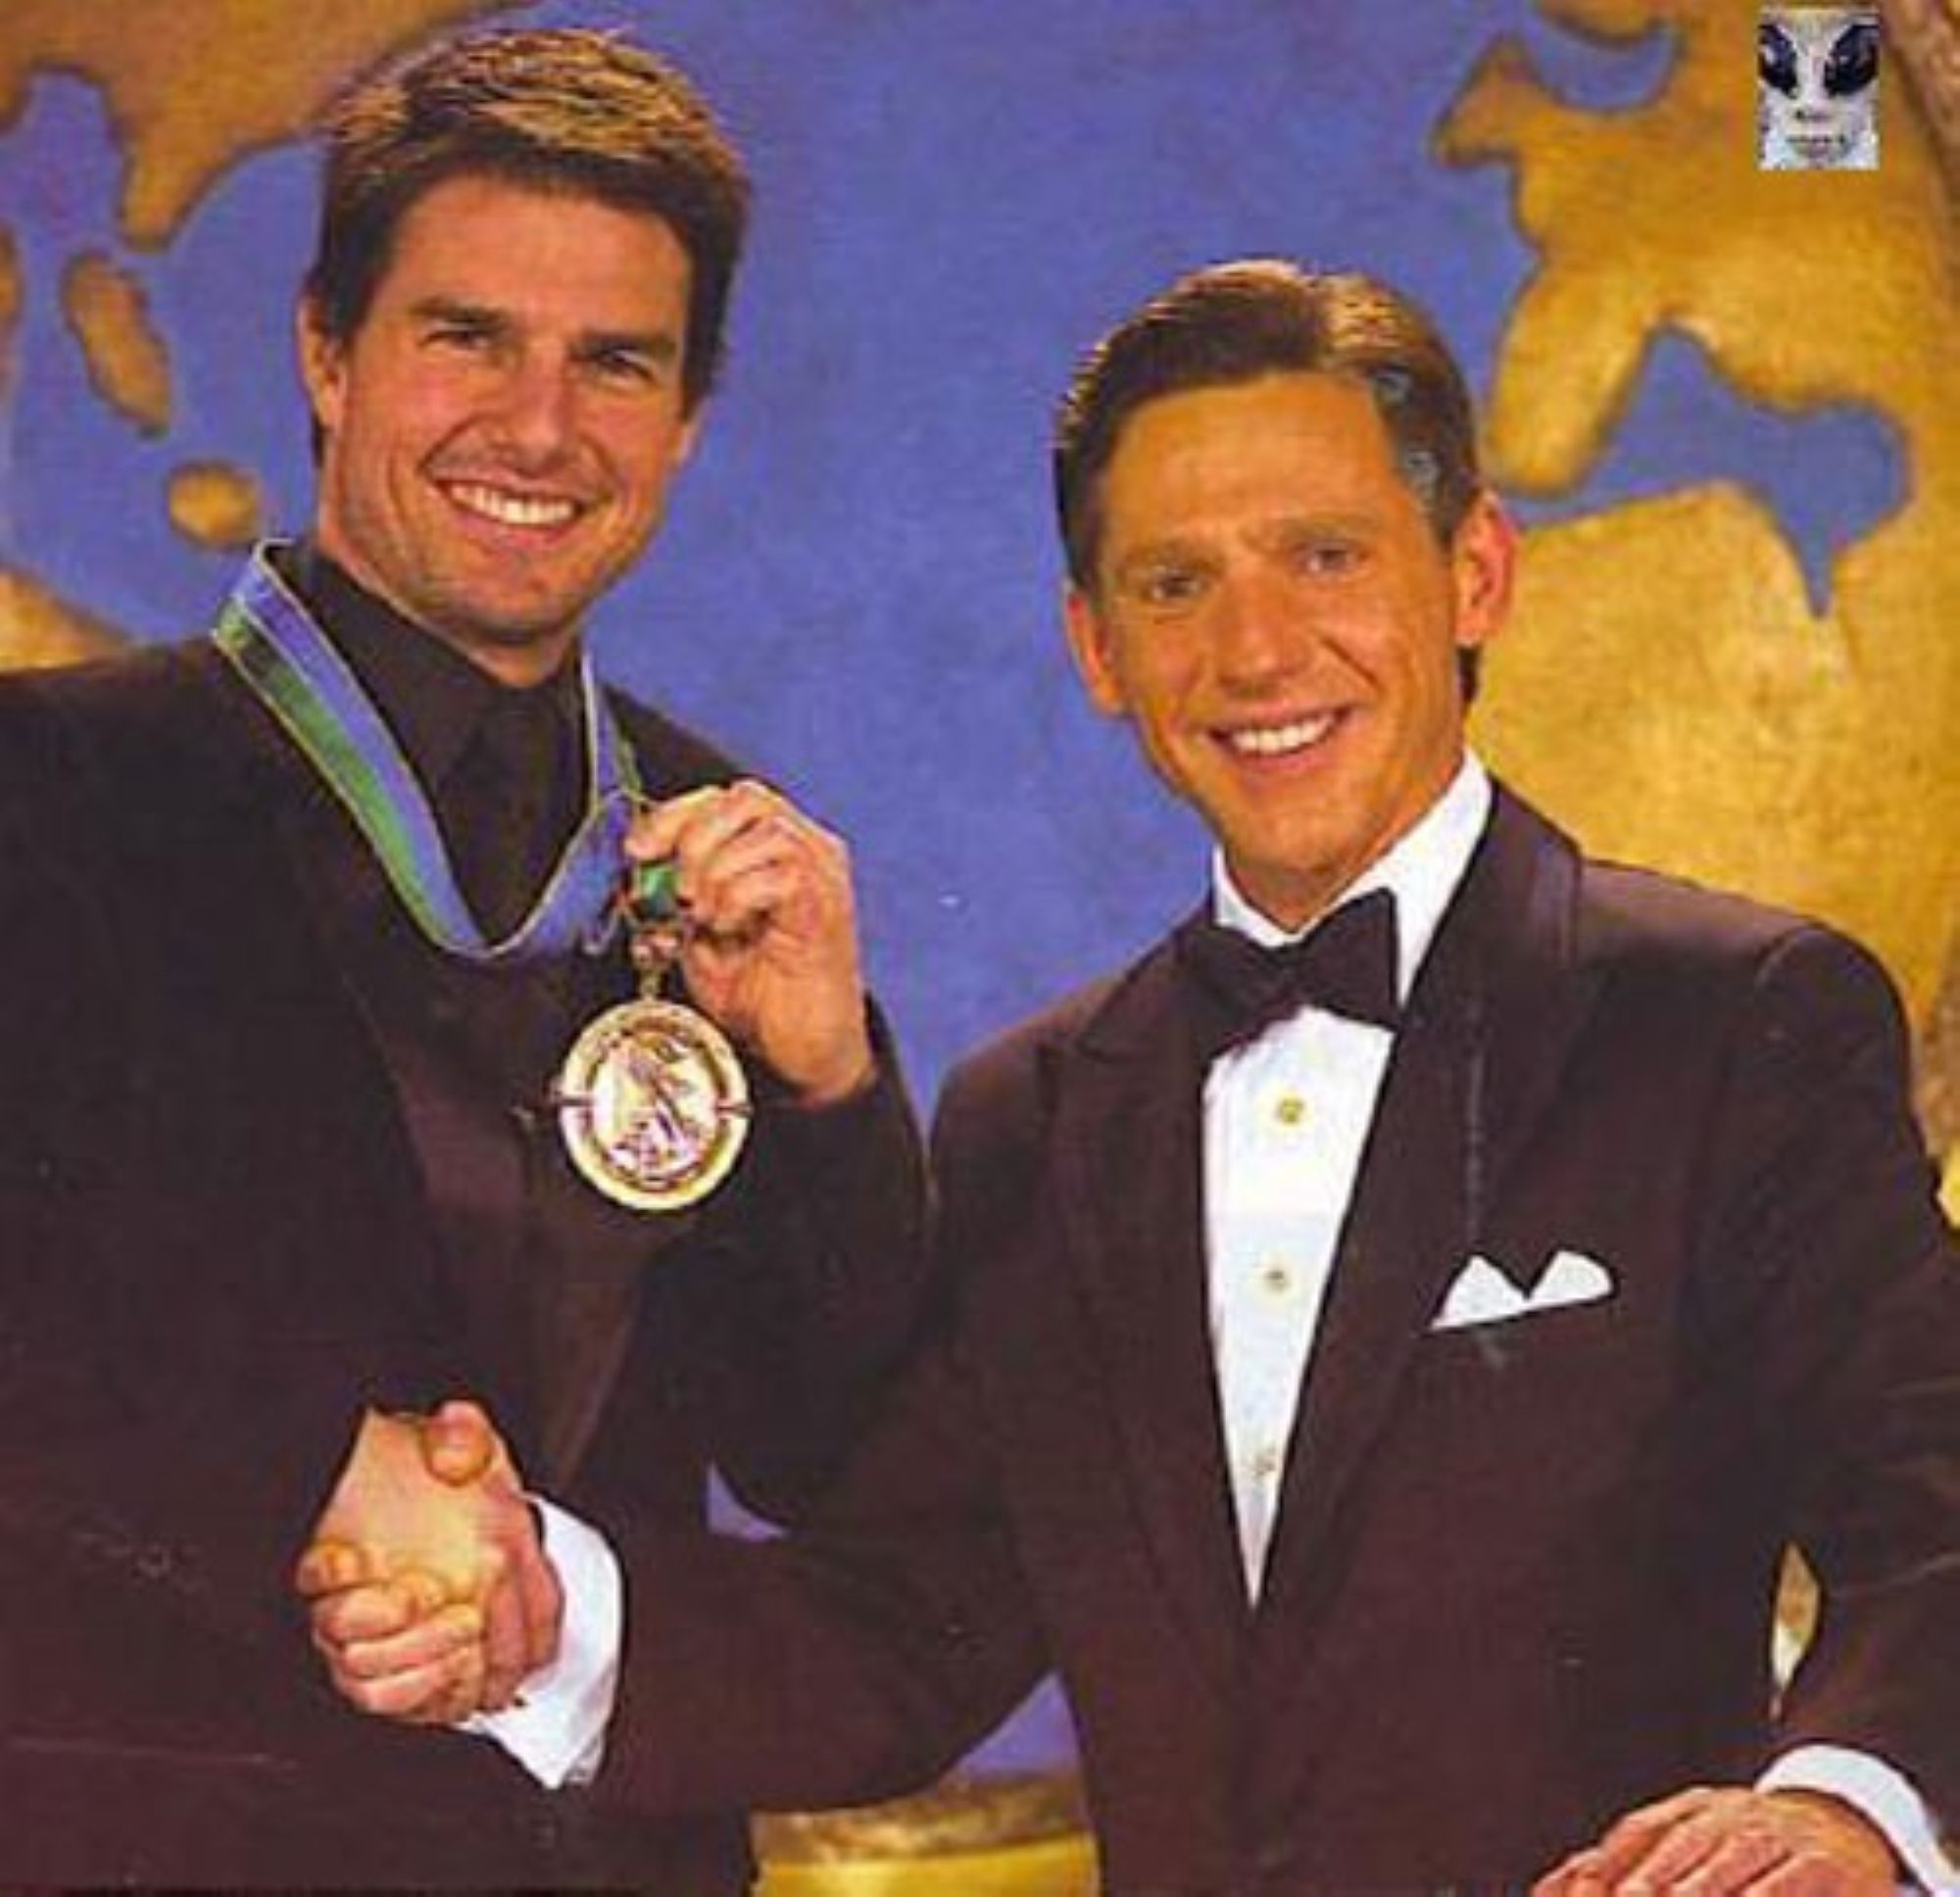 04-Cruise-and-Miscavige_1